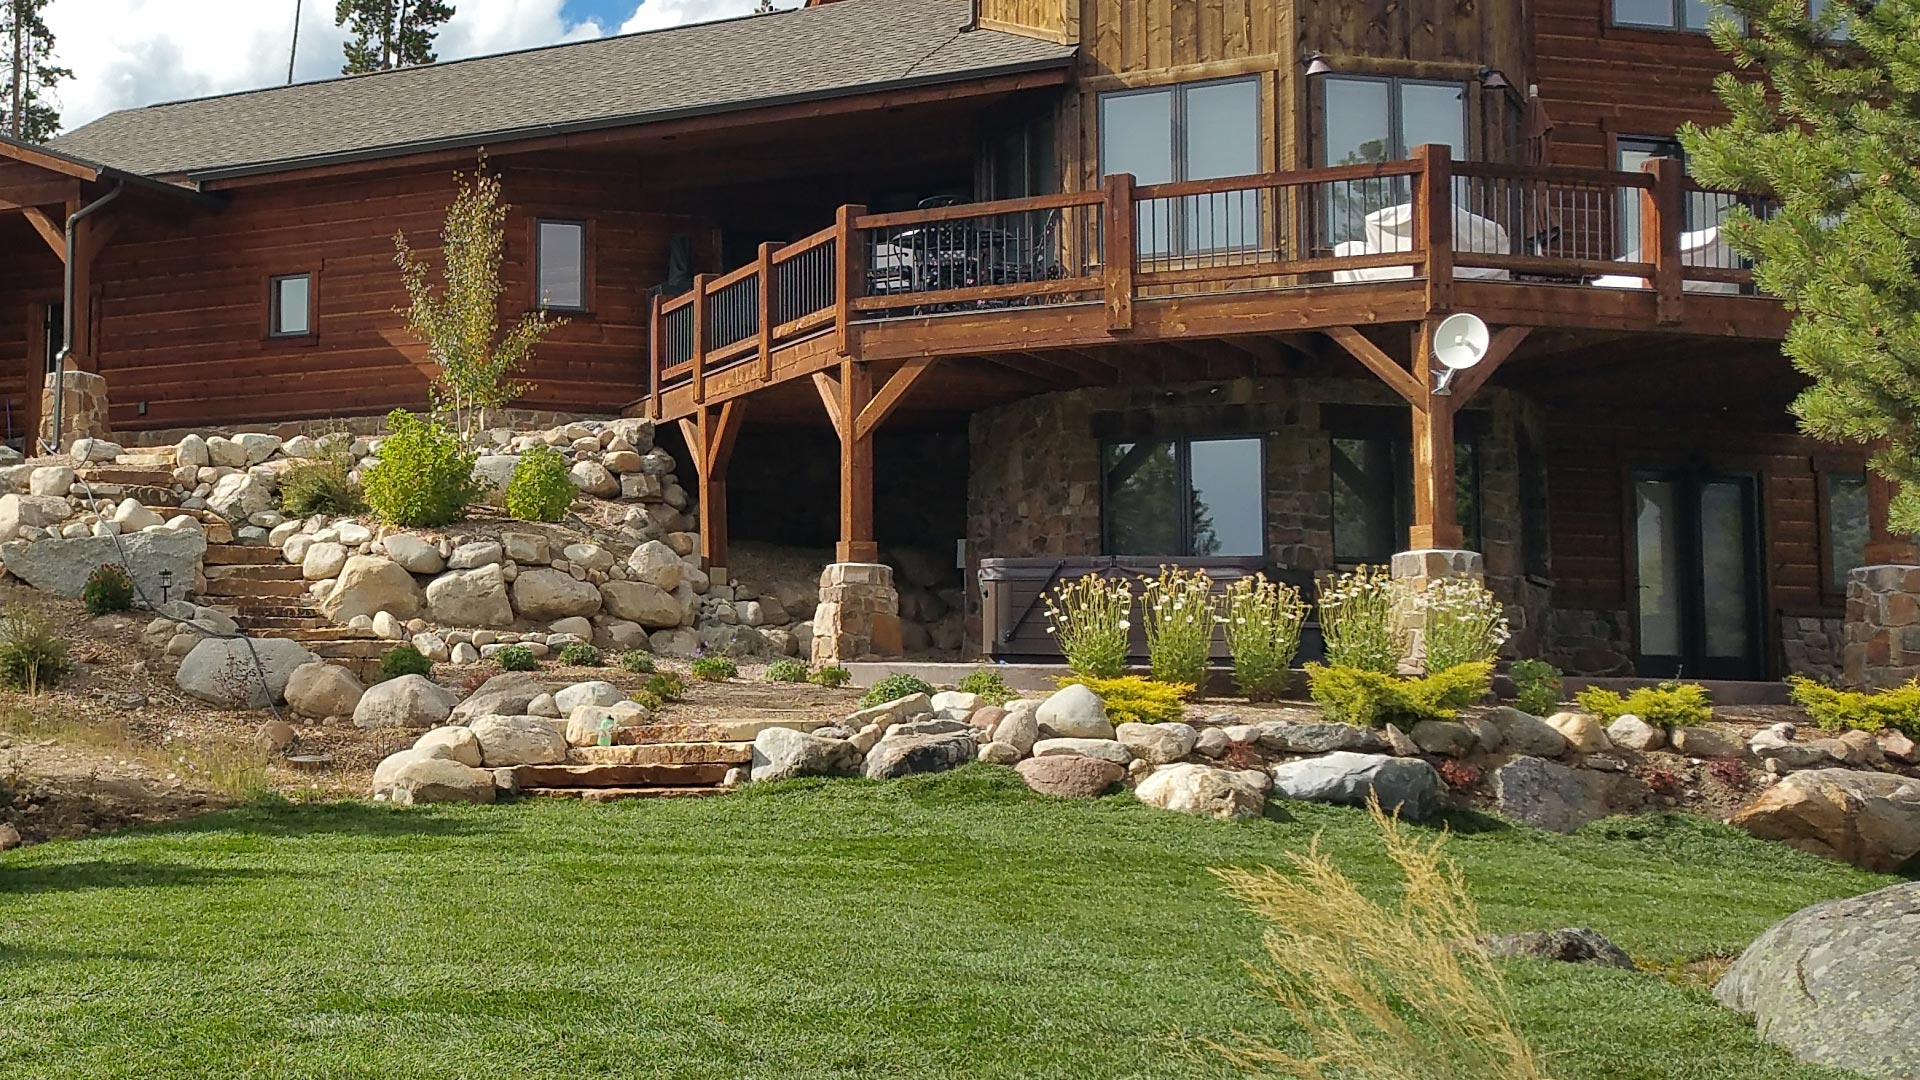 A completed project at a home in Winter Park, CO that includes hardscaping and landscaping.